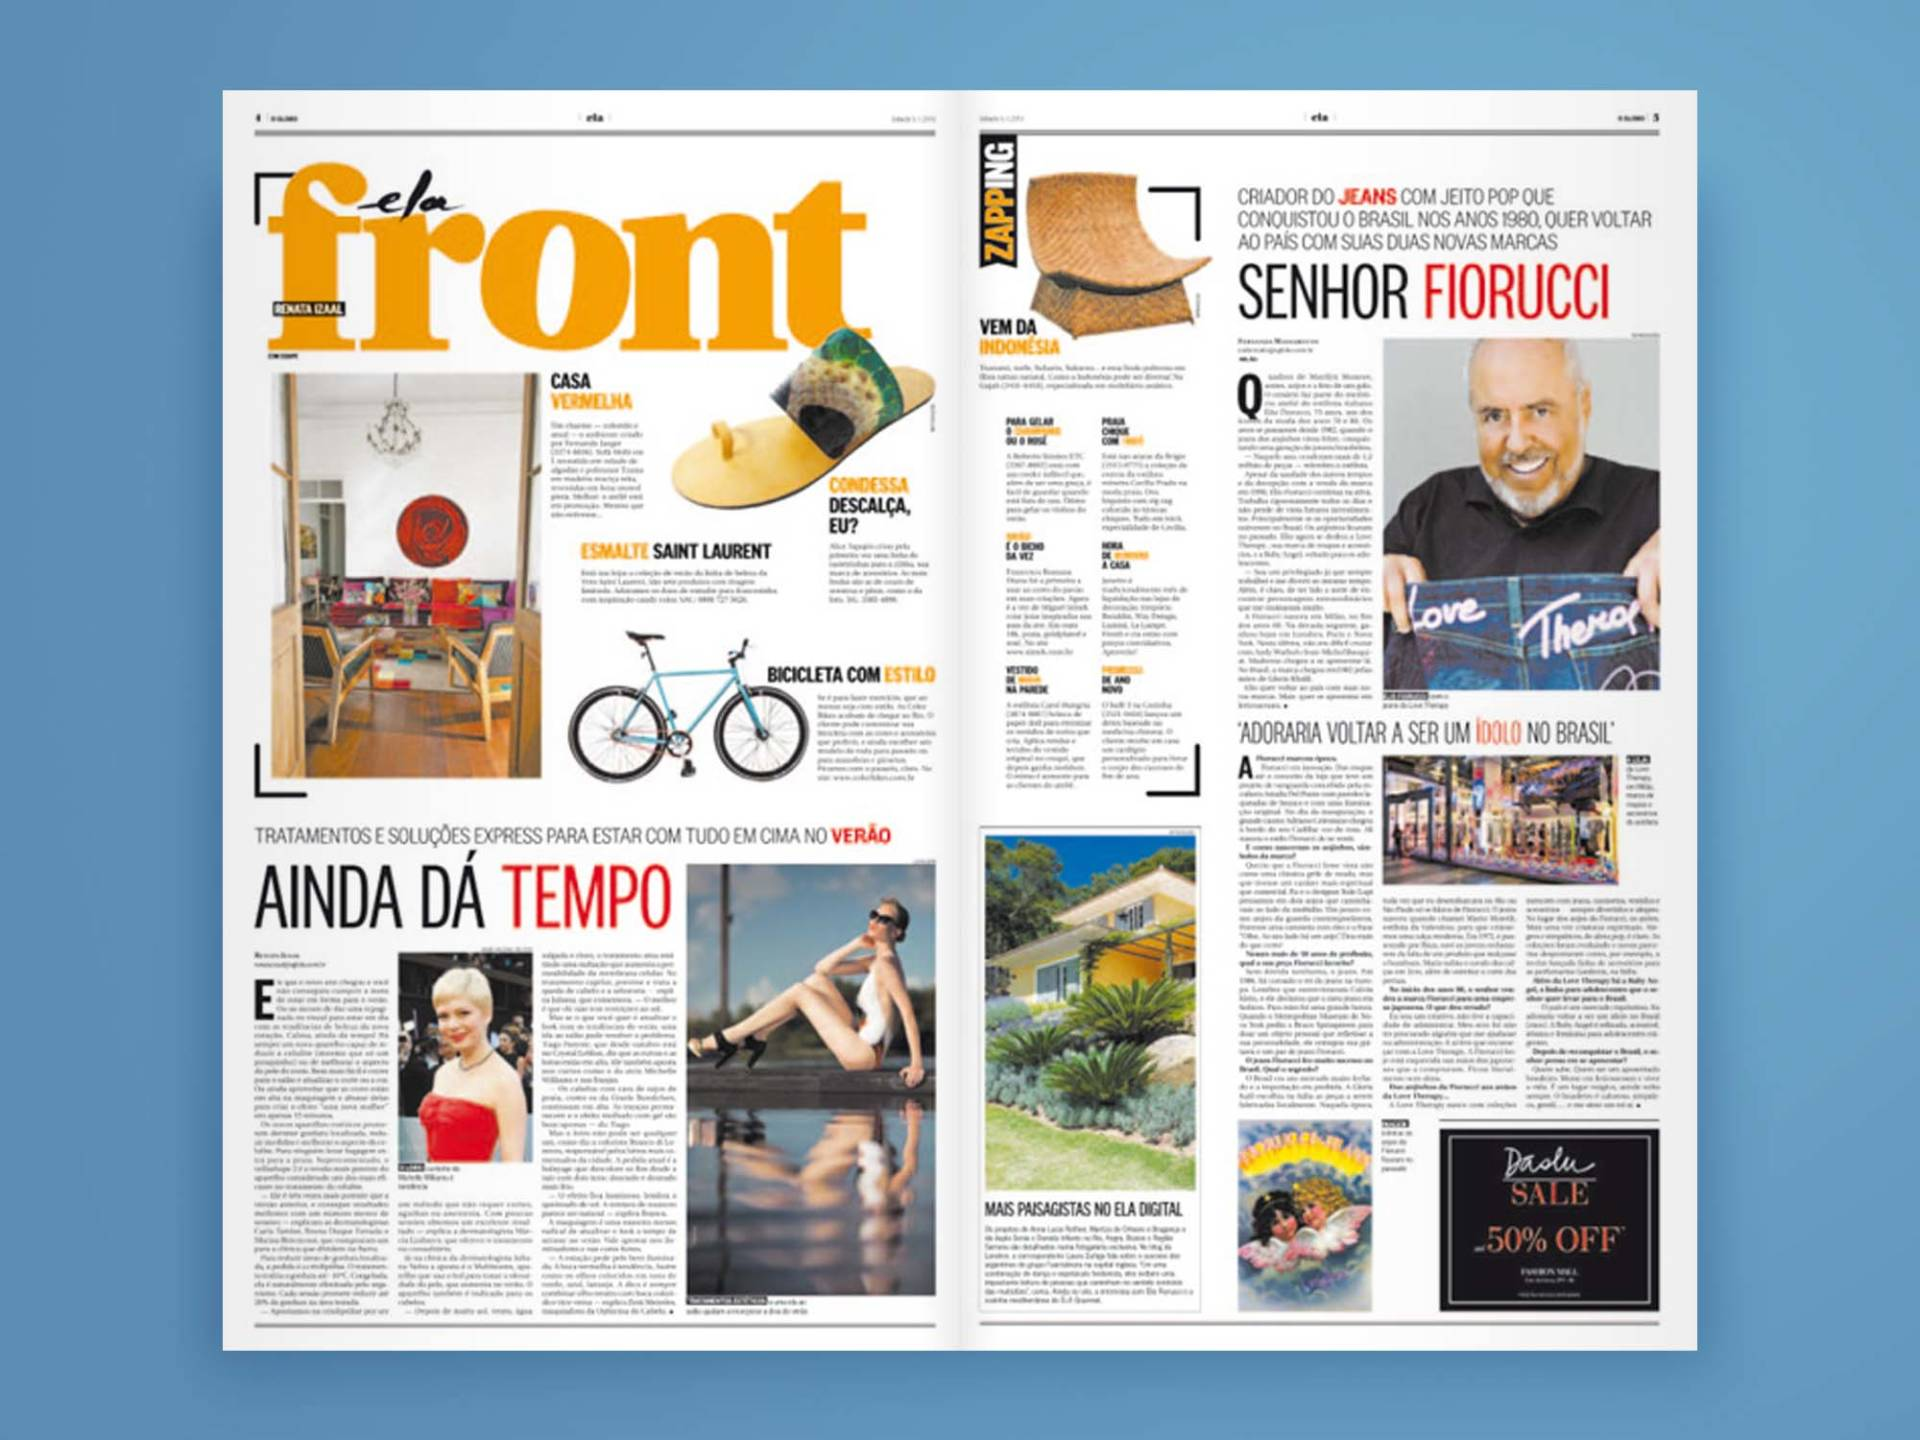 O_Globo_Supplementi_03_Wenceslau_News_Design_